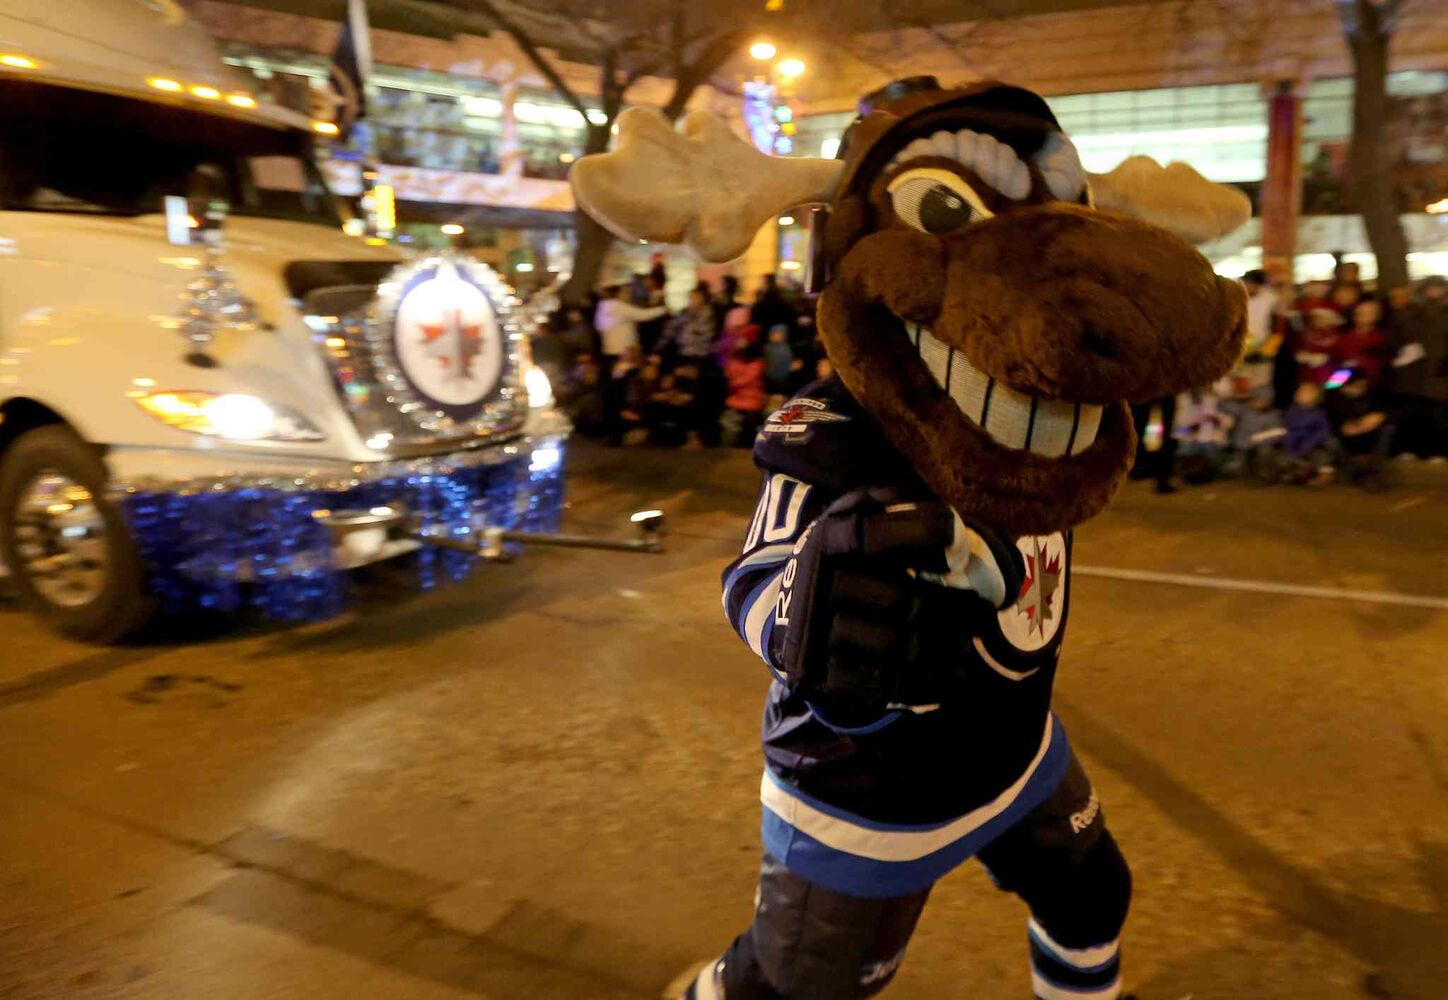 Winnipeg Jets mascot Mick E. Moose was among the paraders. (TREVOR HAGAN / WINNIPEG FREE PRESS)